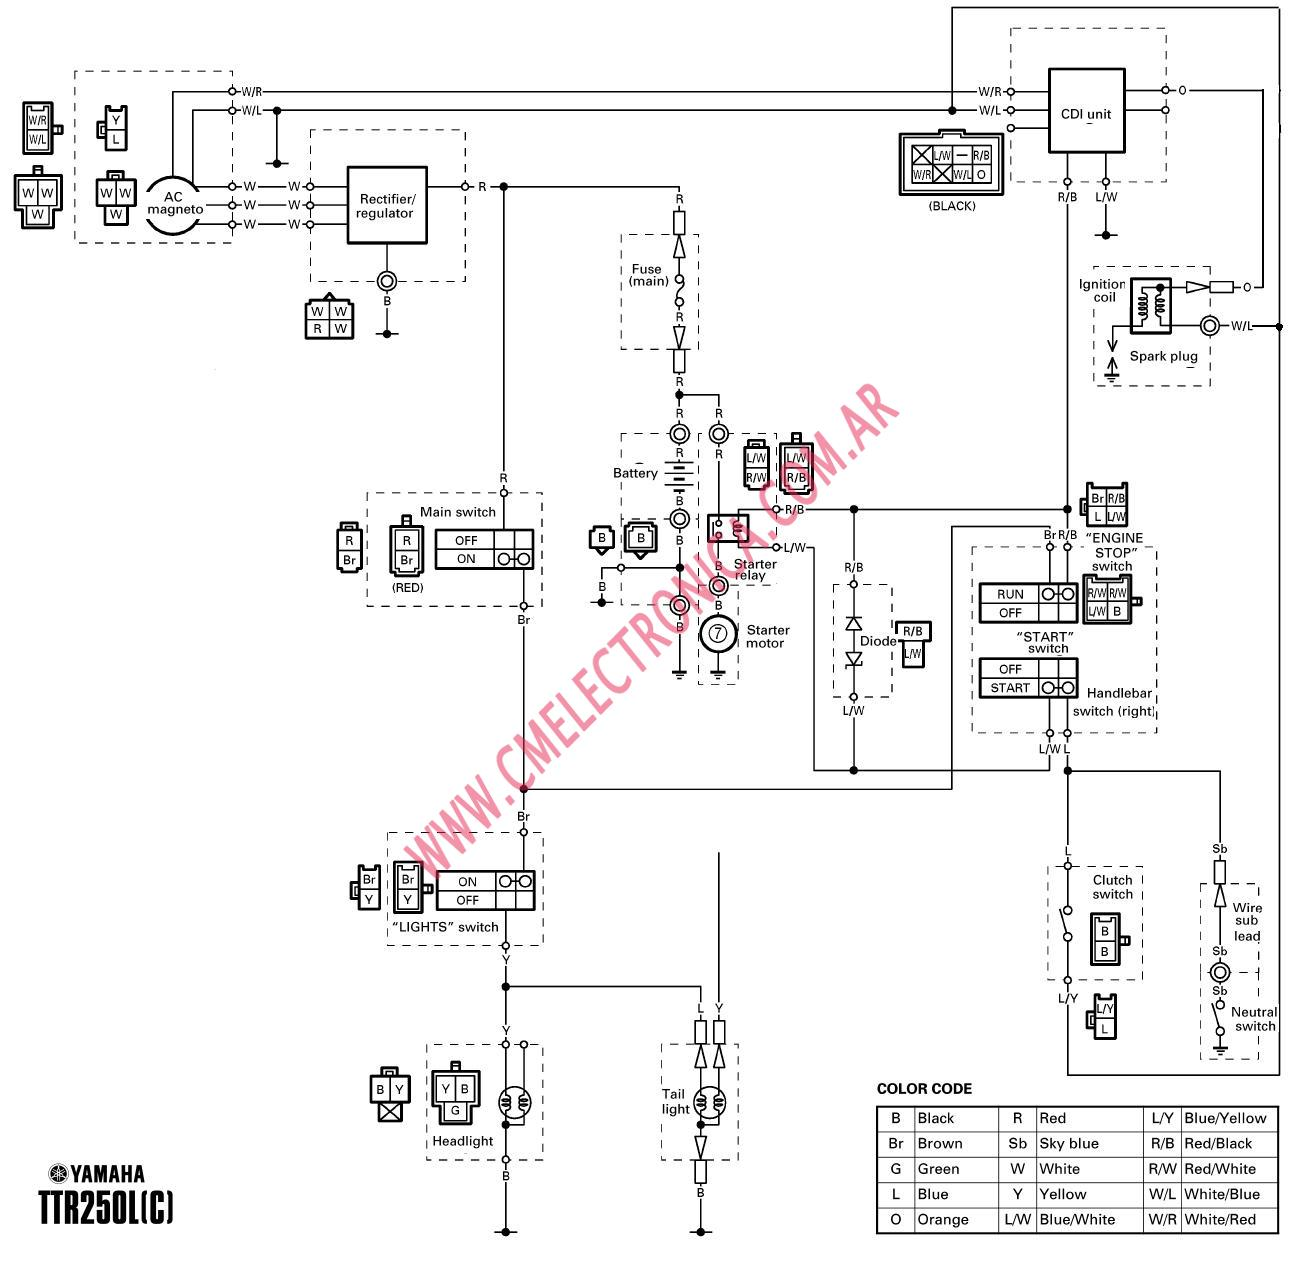 yamaha ttr250 ttr 250 wiring diagram ttr 250 wiring diagram \u2022 indy500 co  at bayanpartner.co